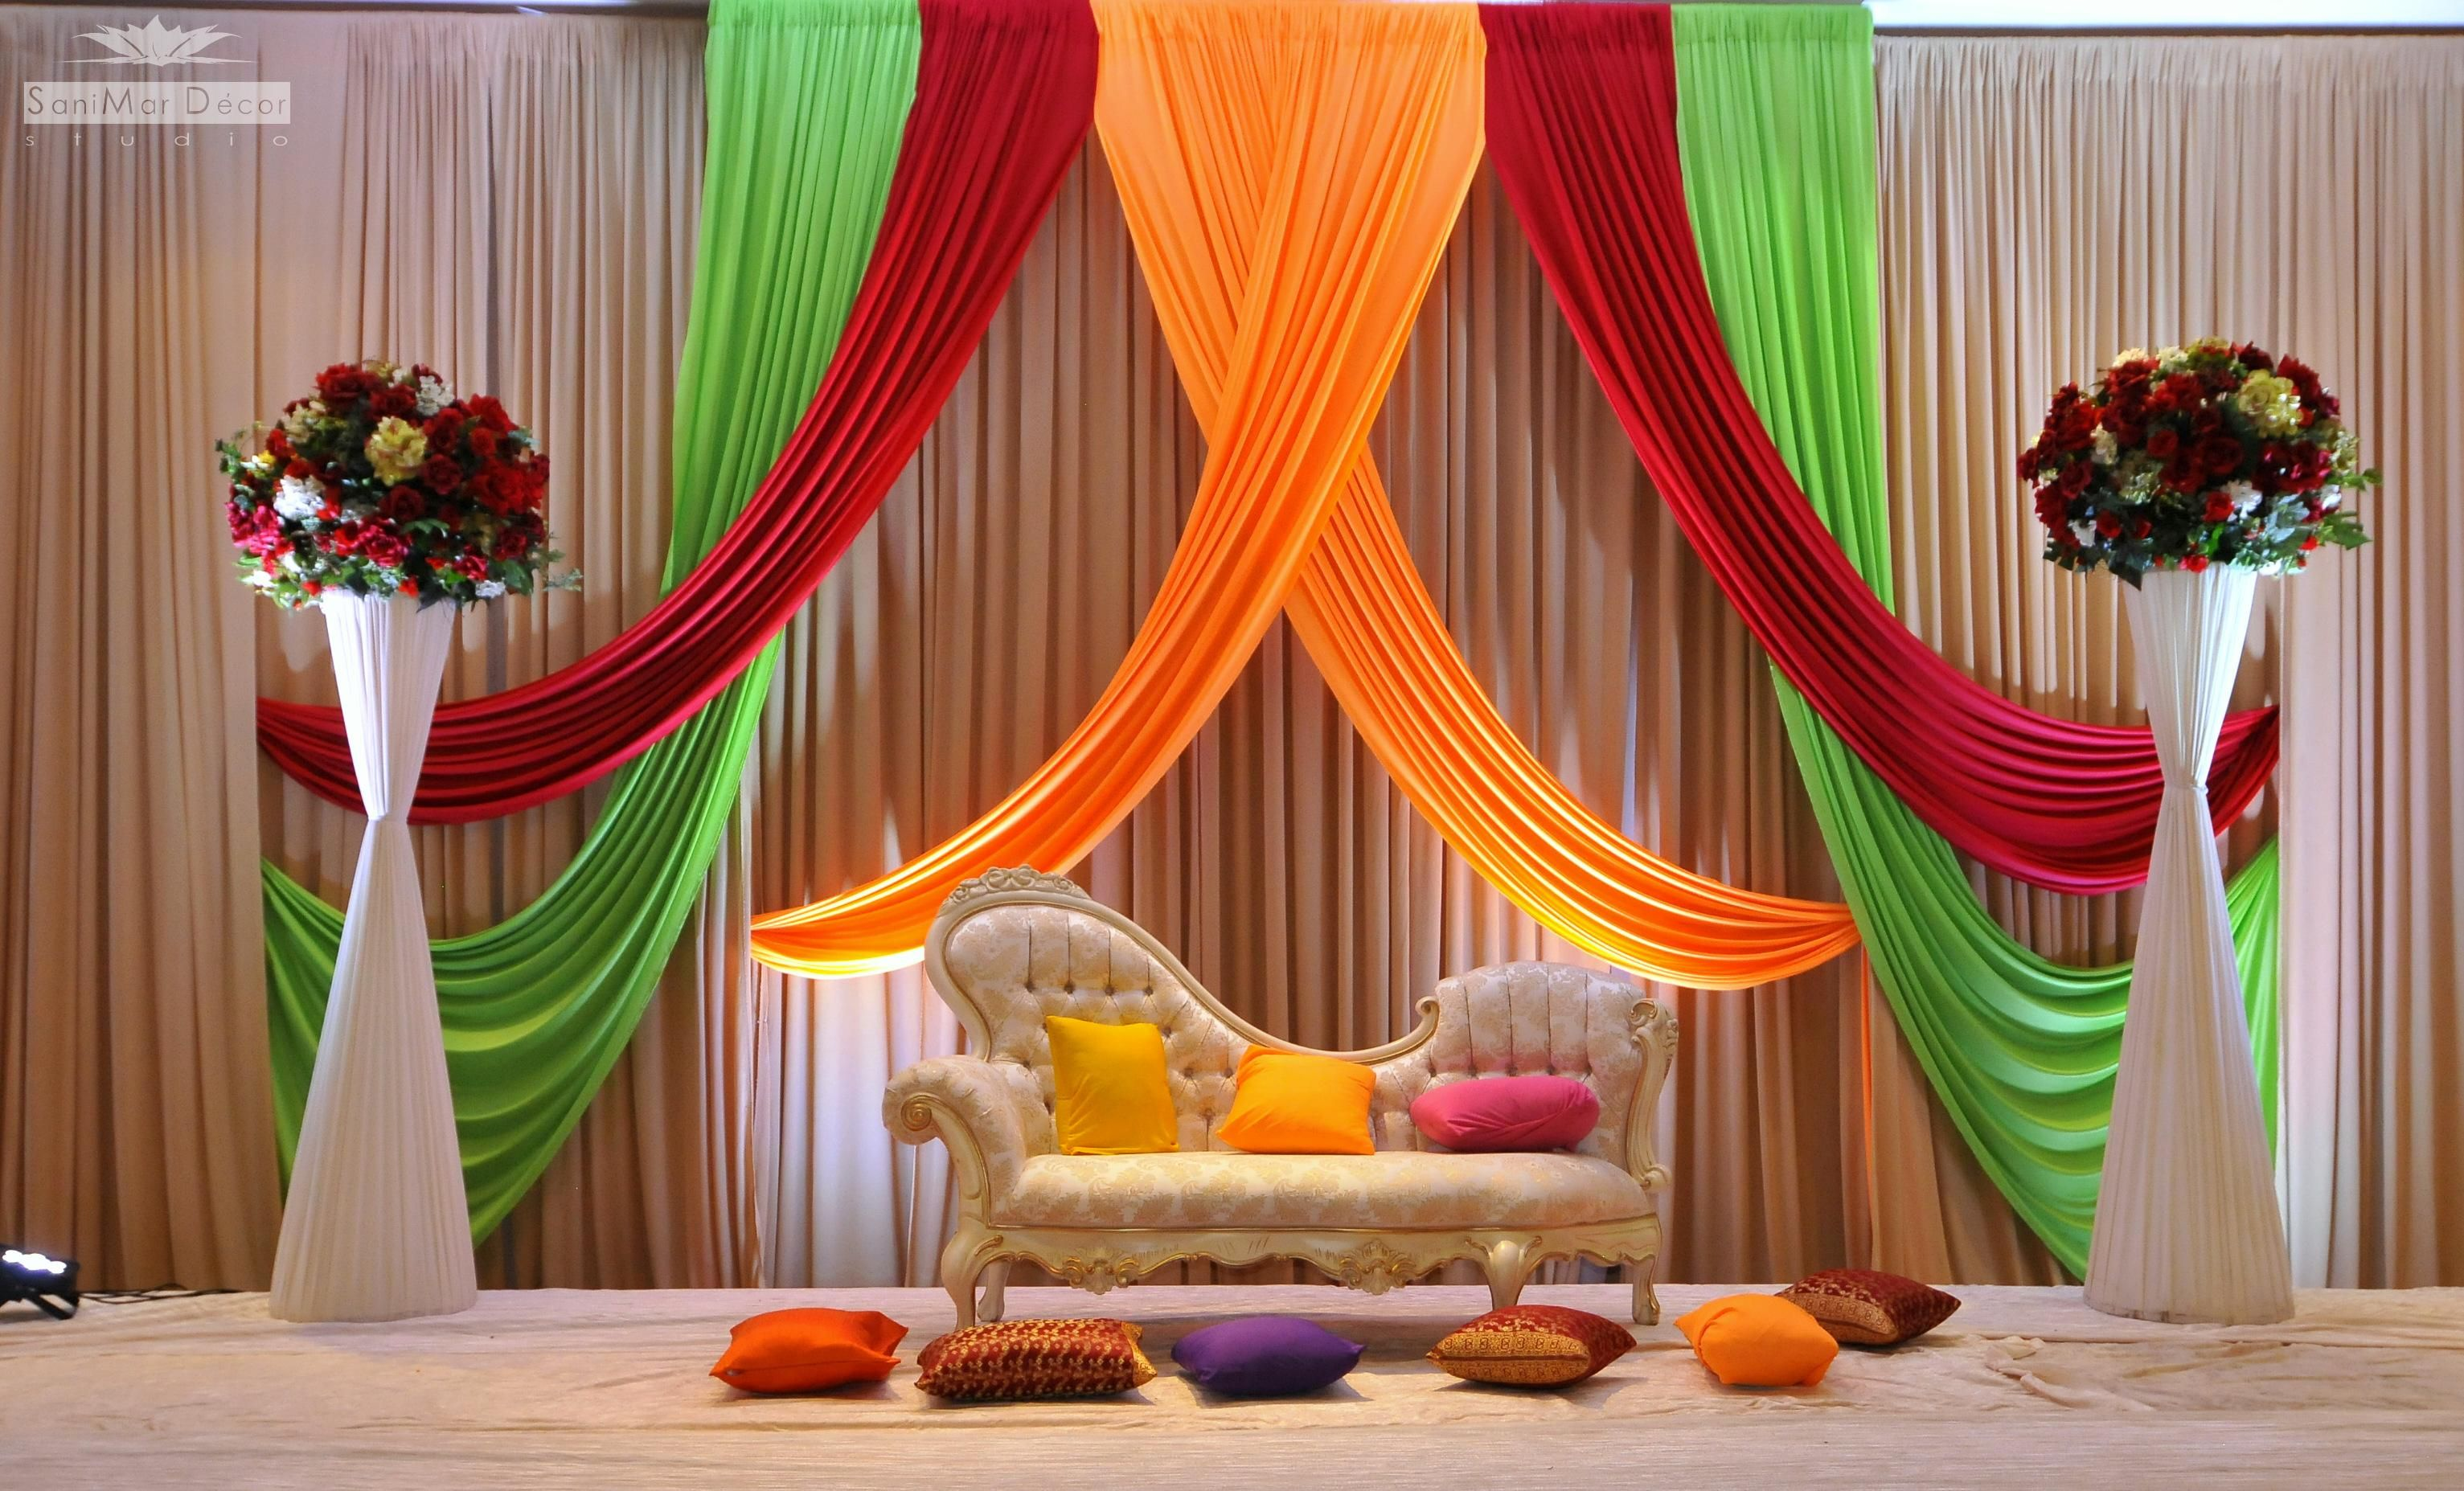 Wedding stage decoration wedding decorations natural for Wedding decoration design